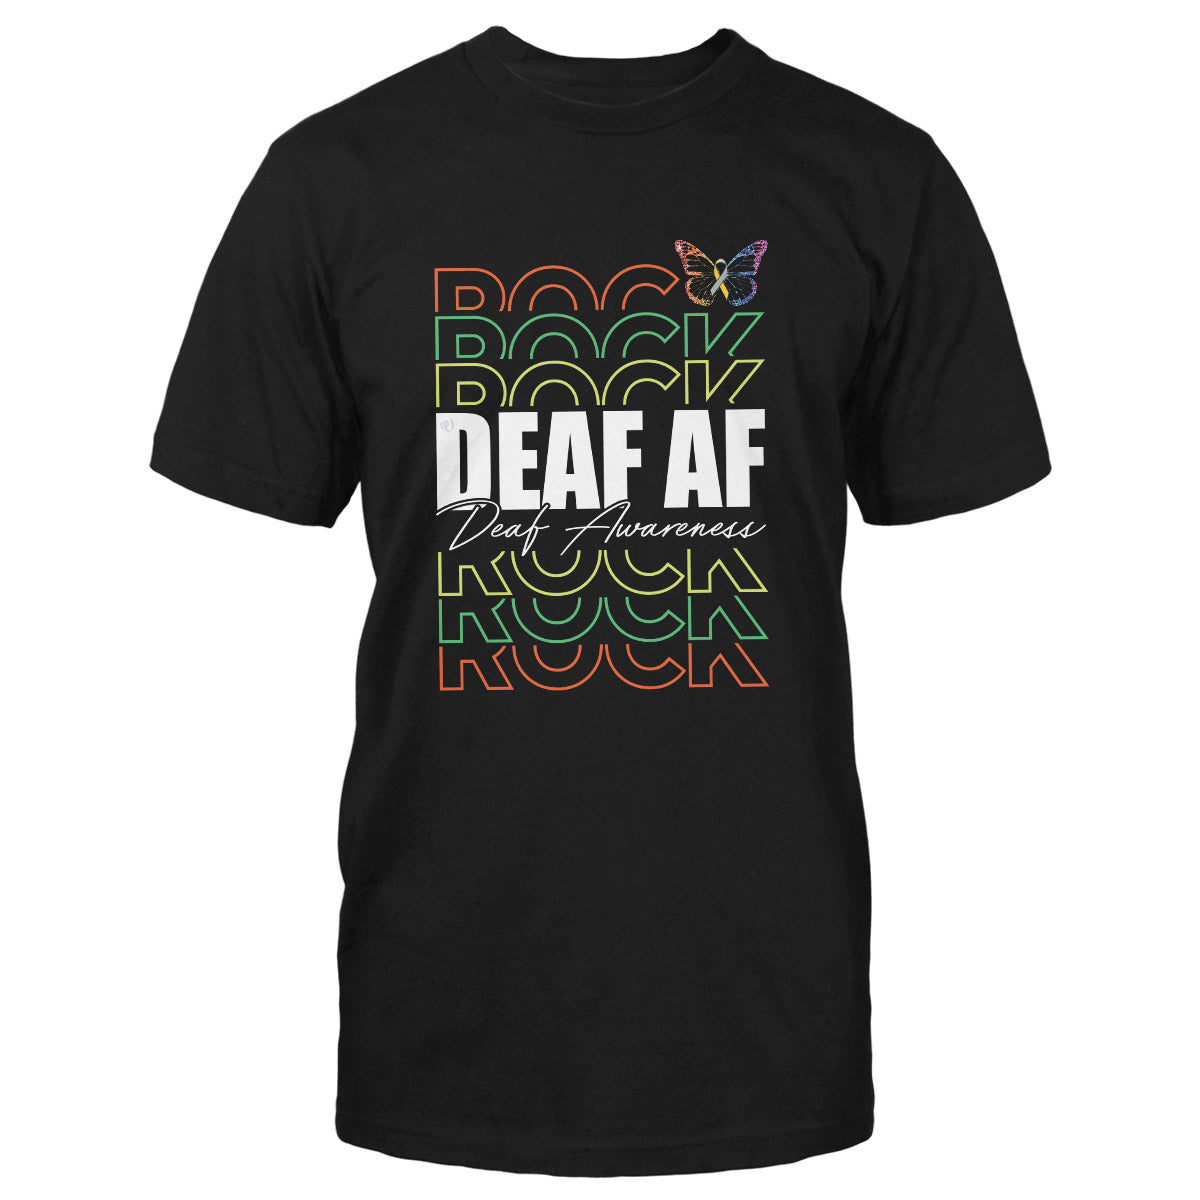 Deaf Af Deaf Awareness Classic T-shirt